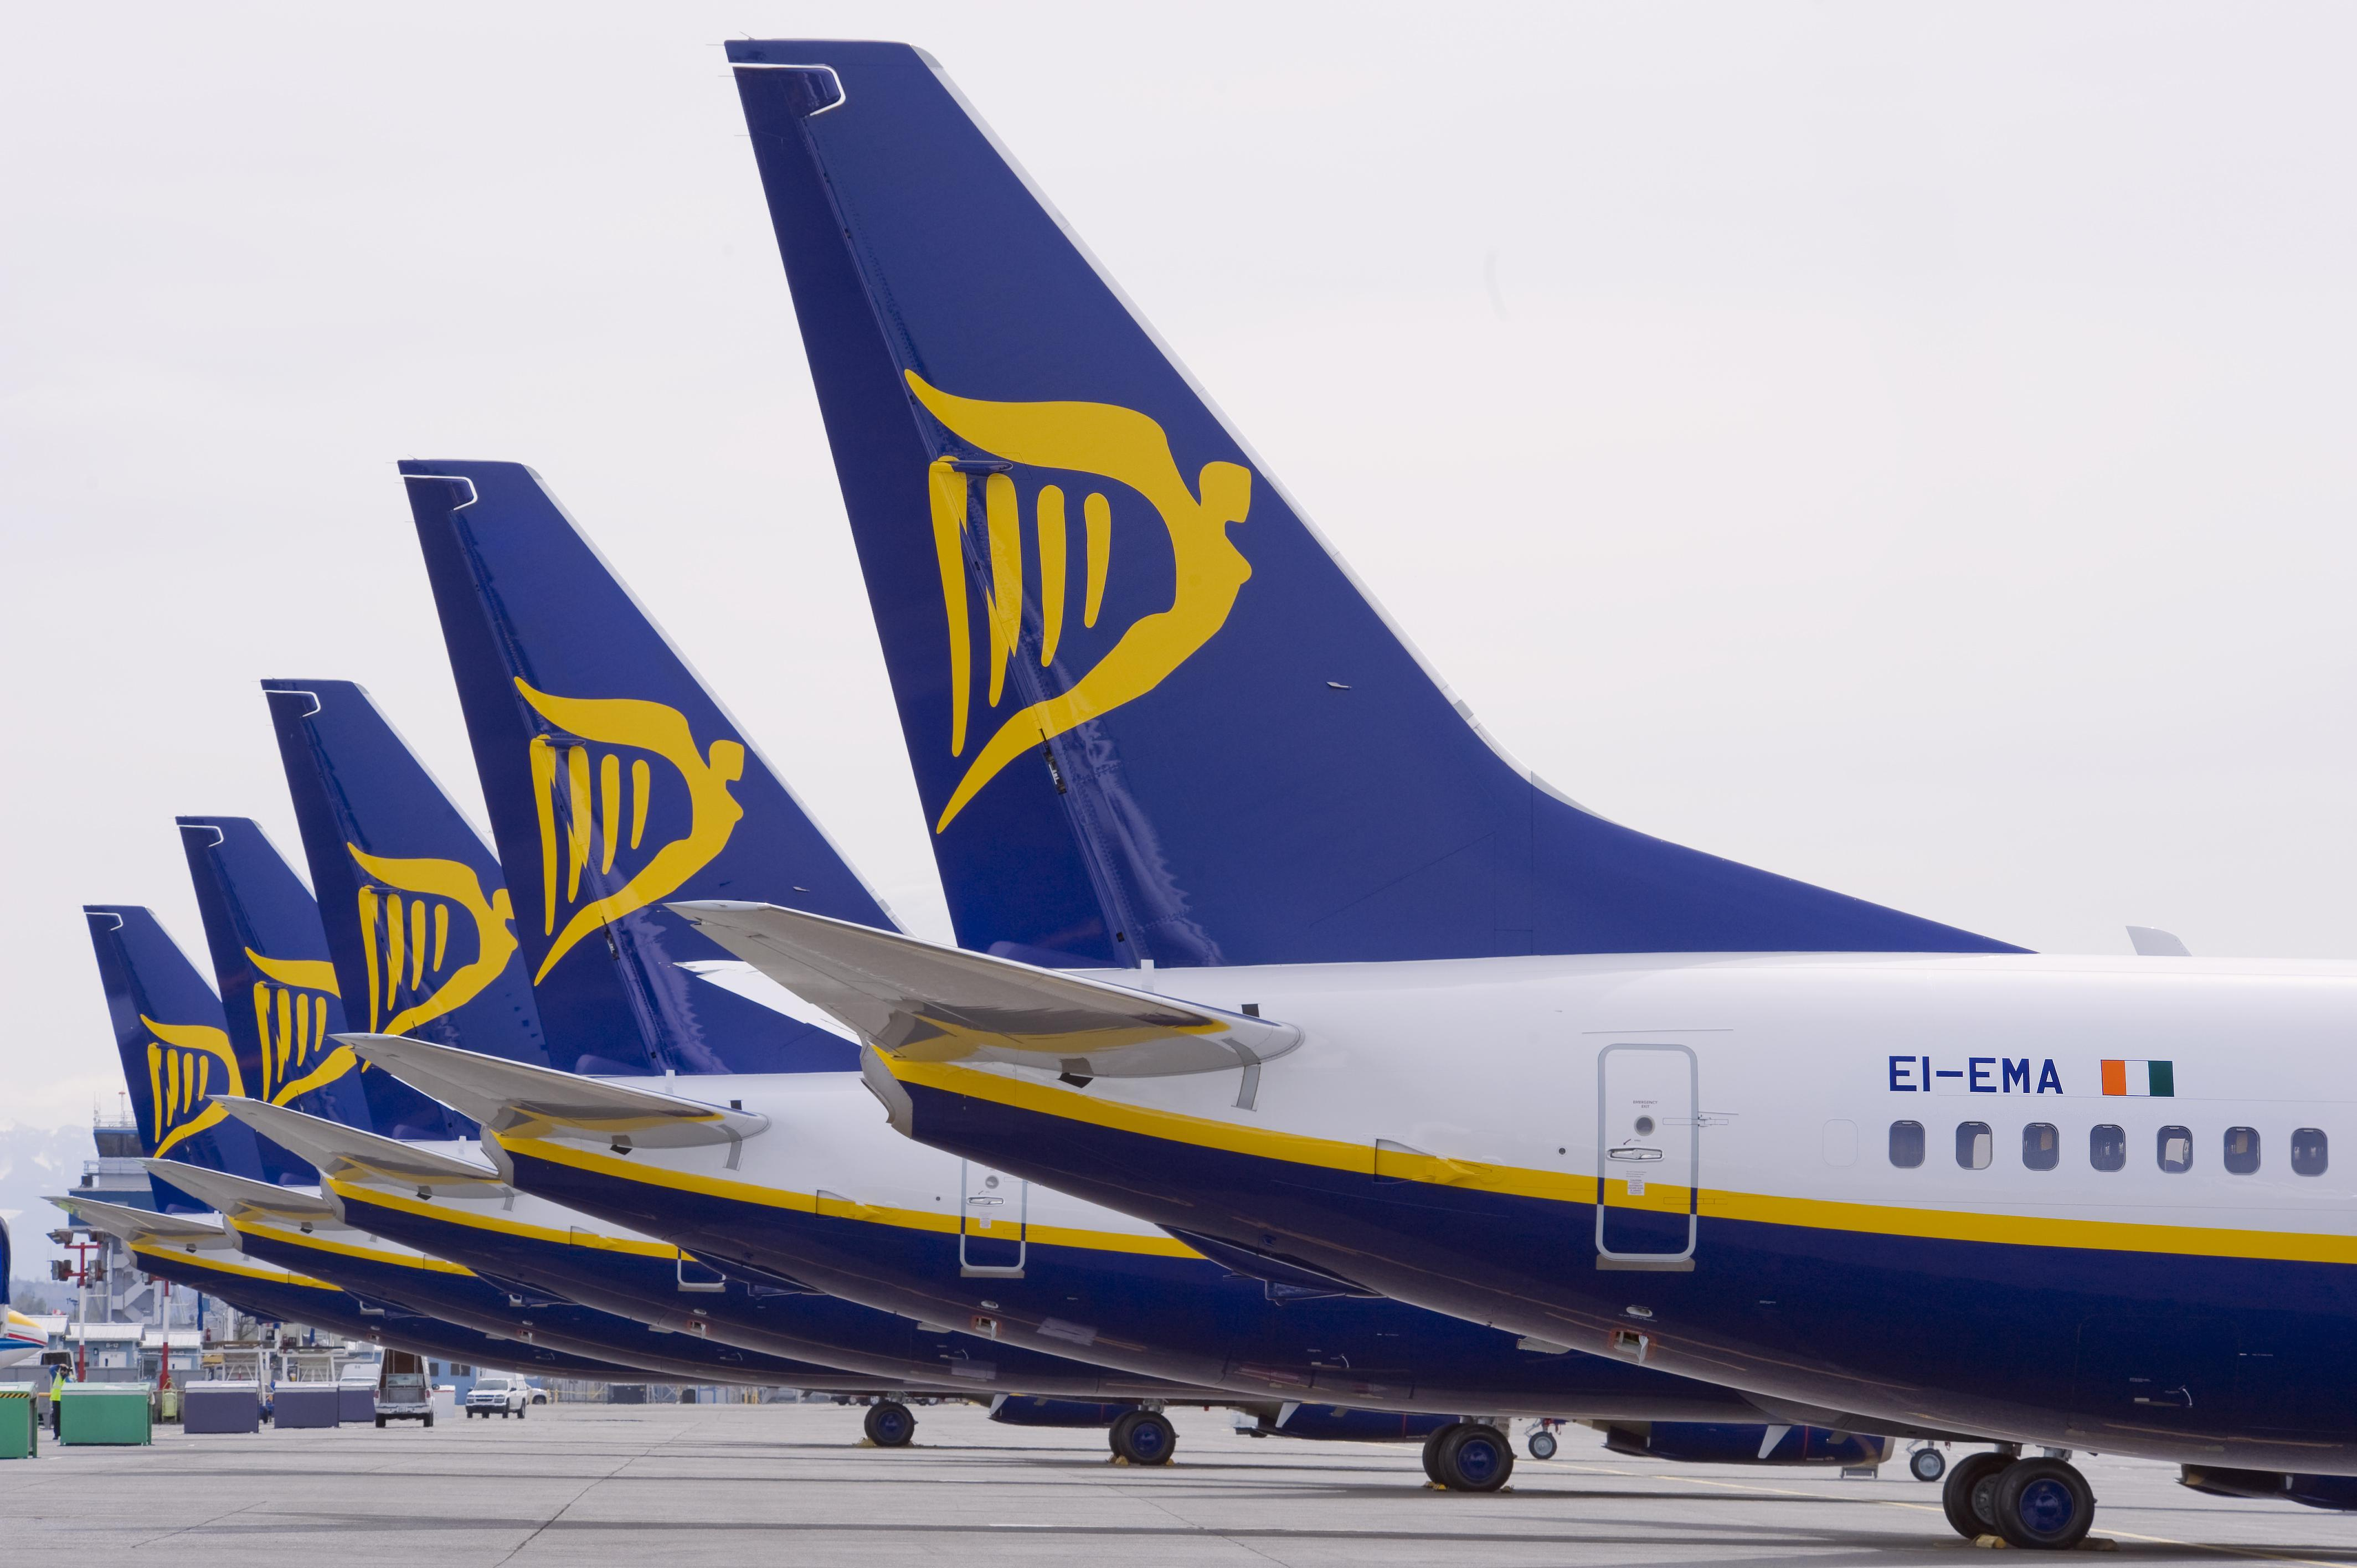 Ryanair unions call for strike action over proposed base closures